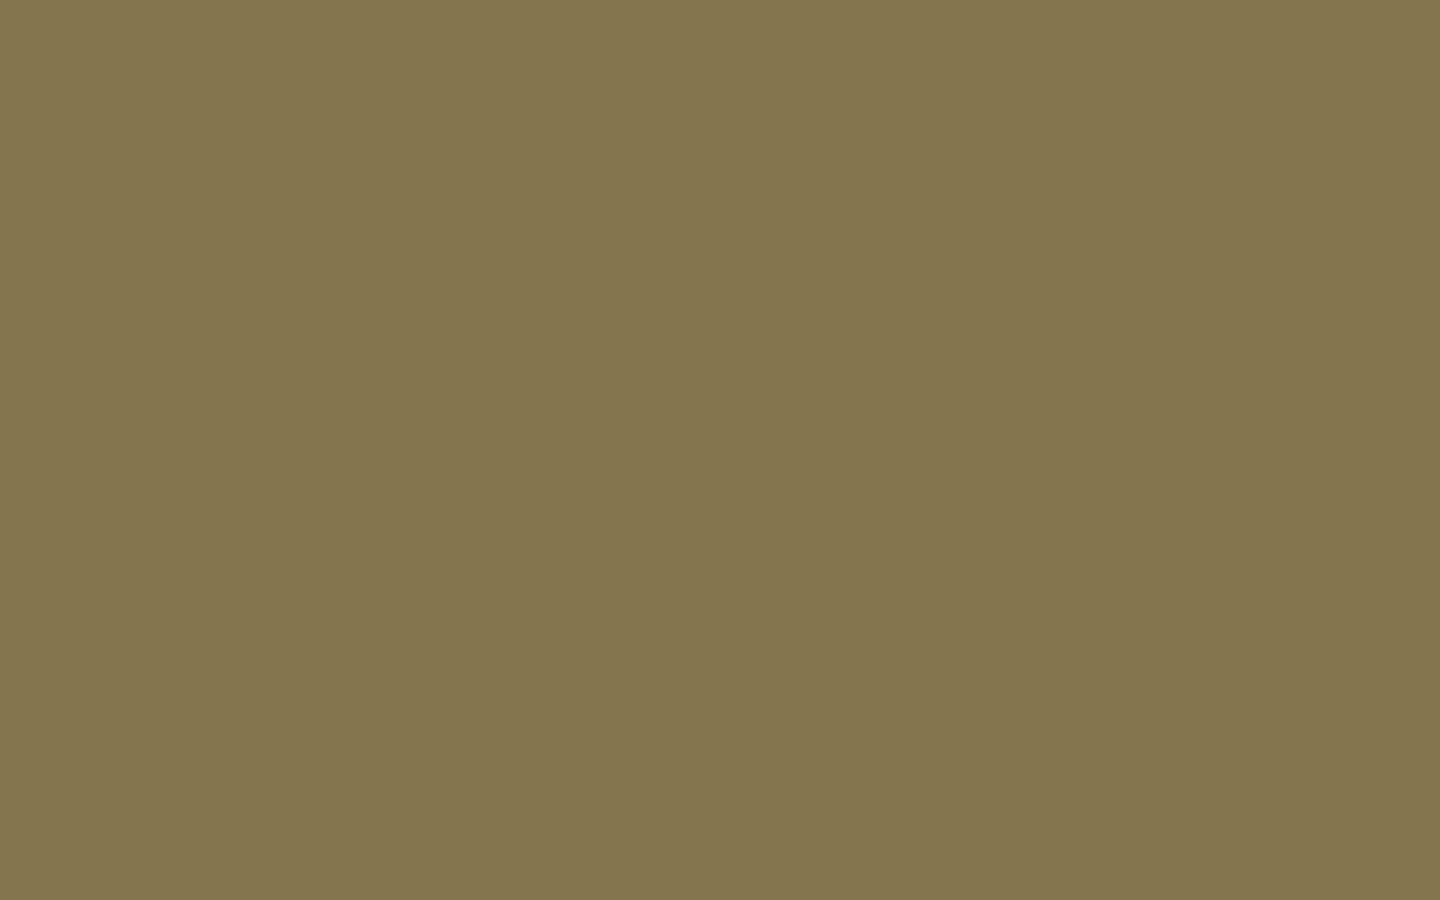 1440x900 Gold Fusion Solid Color Background